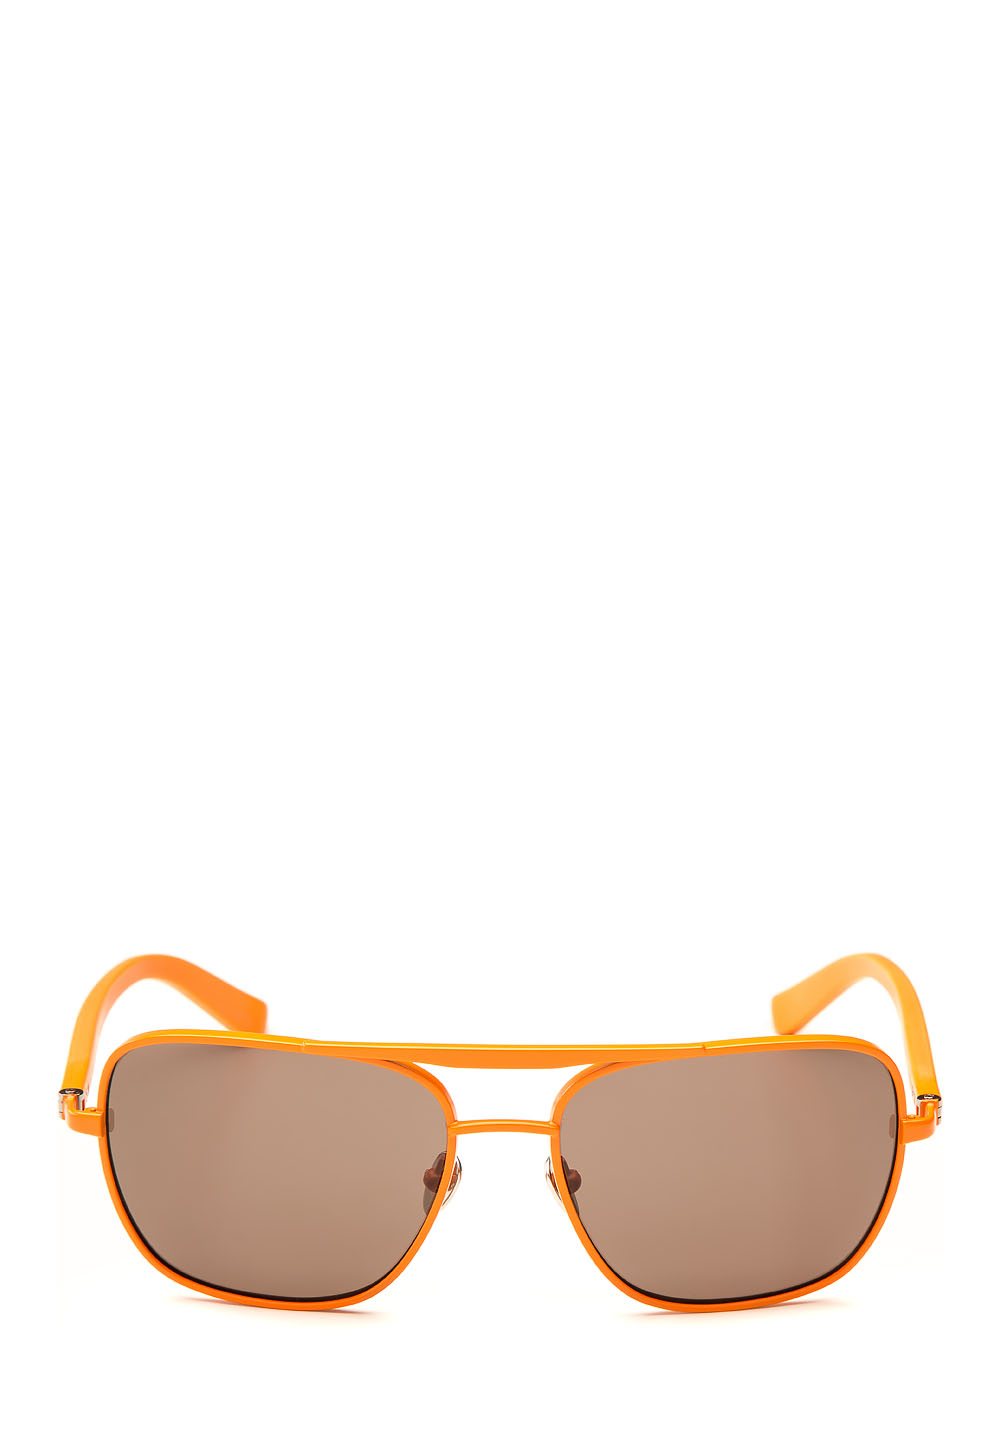 CK SUN Sonnenbrille Ck380S, UV 400, orange